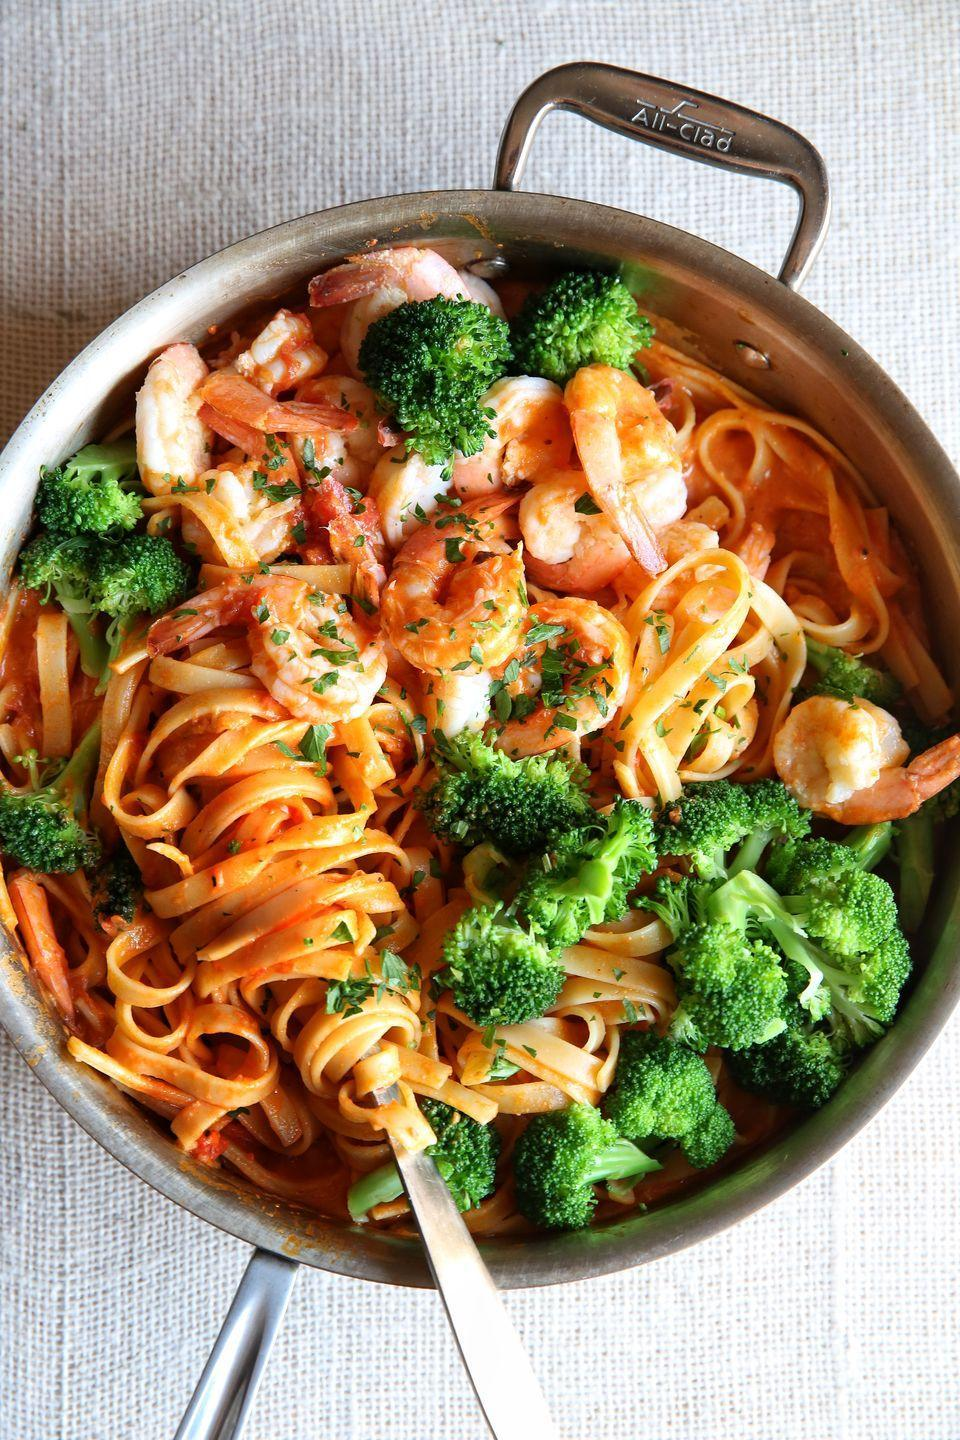 "<p>Shrimp pasta is a no-brainer weeknight win.</p><p>Get the recipe from <a href=""https://www.delish.com/cooking/recipe-ideas/recipes/a49769/shrimp-broccoli-fettuccine-recipe/"" rel=""nofollow noopener"" target=""_blank"" data-ylk=""slk:Delish"" class=""link rapid-noclick-resp"">Delish</a>.<br></p>"